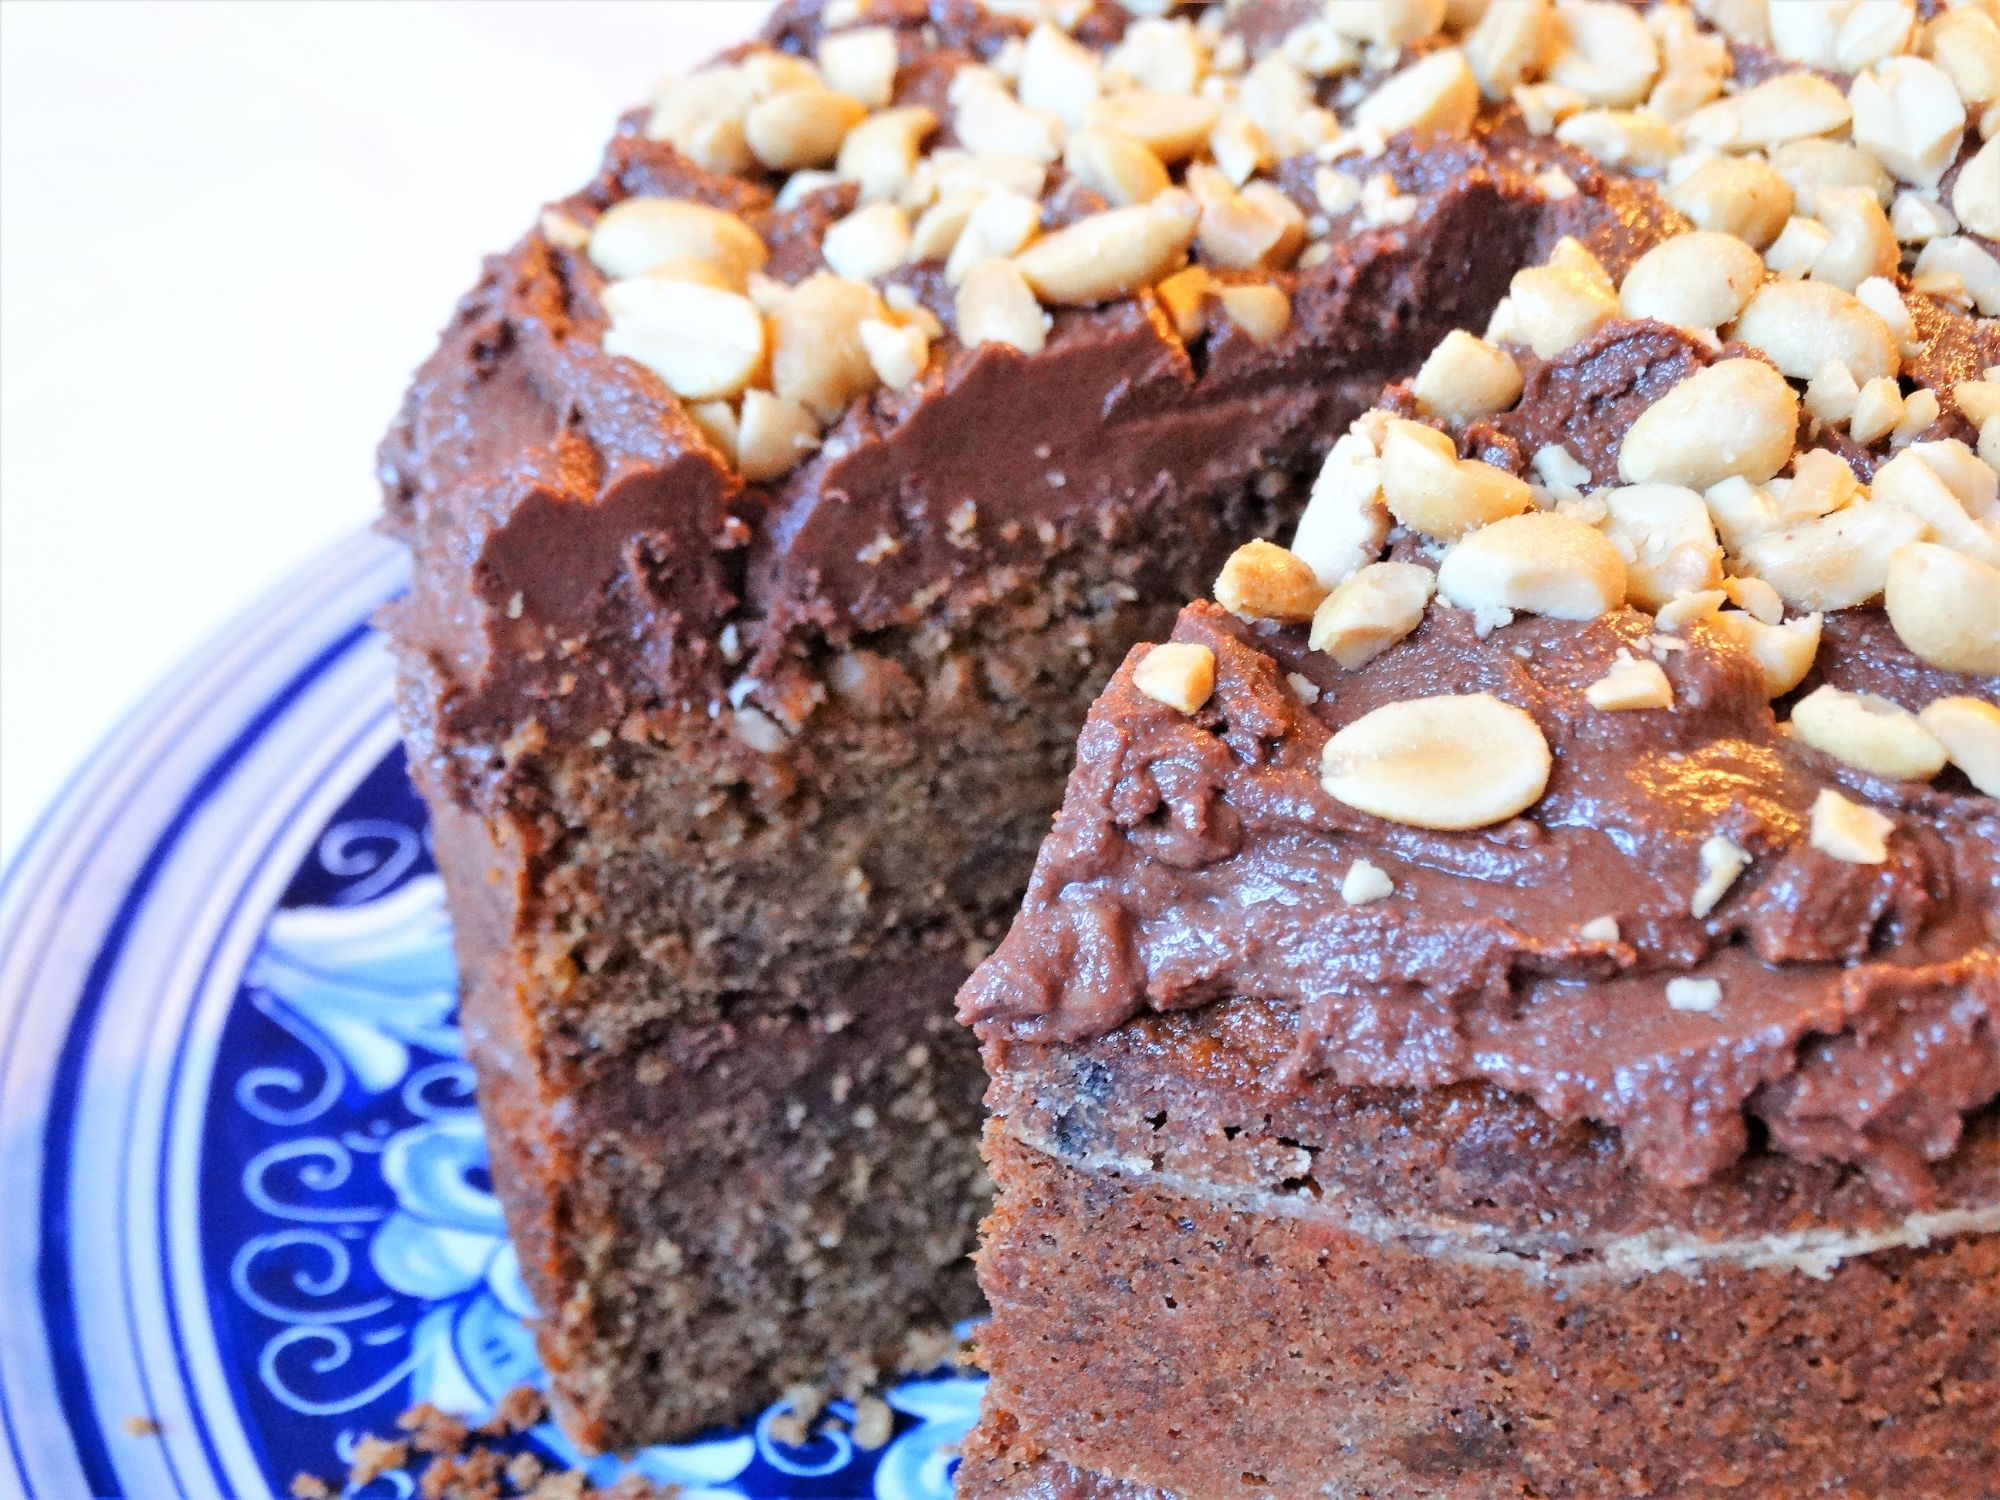 Banana Chocolate and Peanut Butter Cake